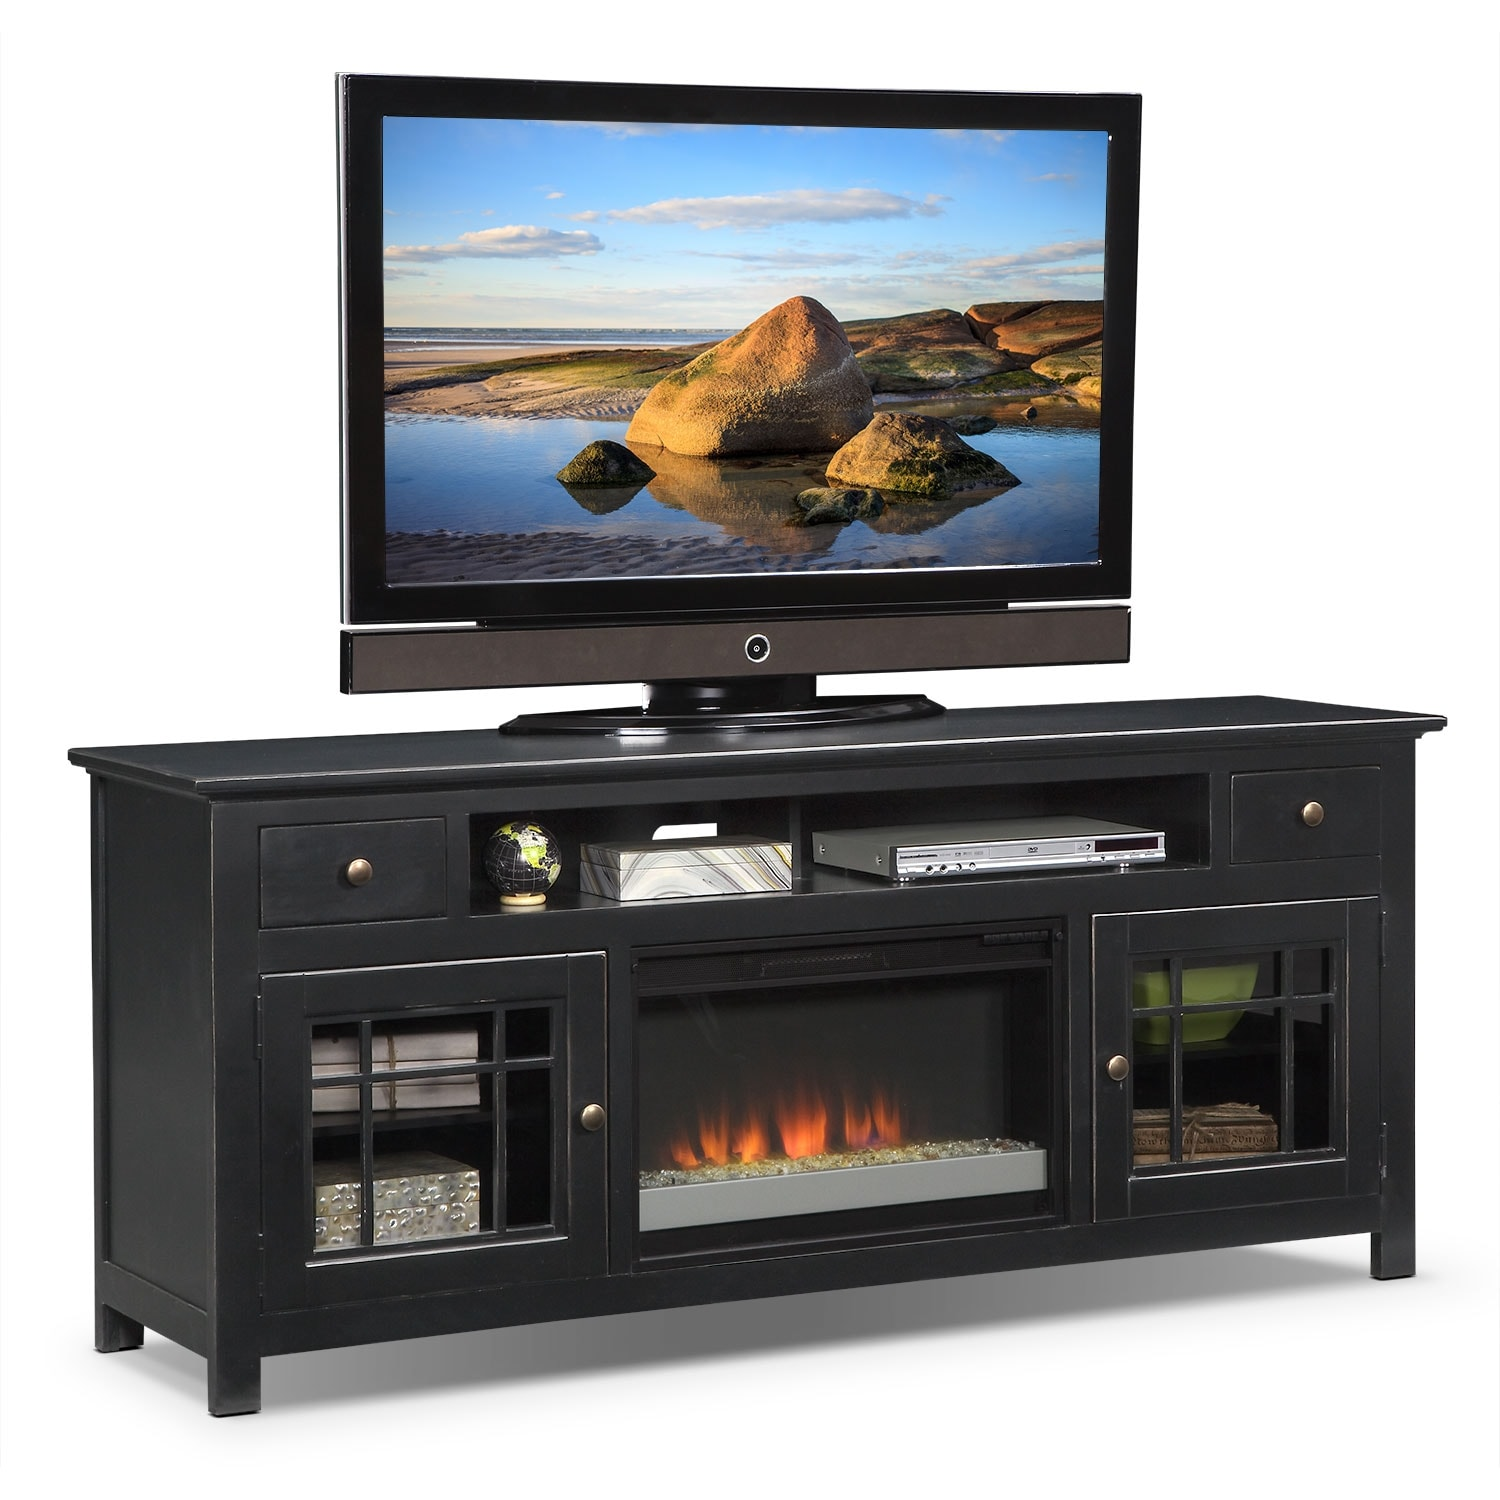 "Merrick 74"" Fireplace TV Stand with Contemporary Insert - Black"